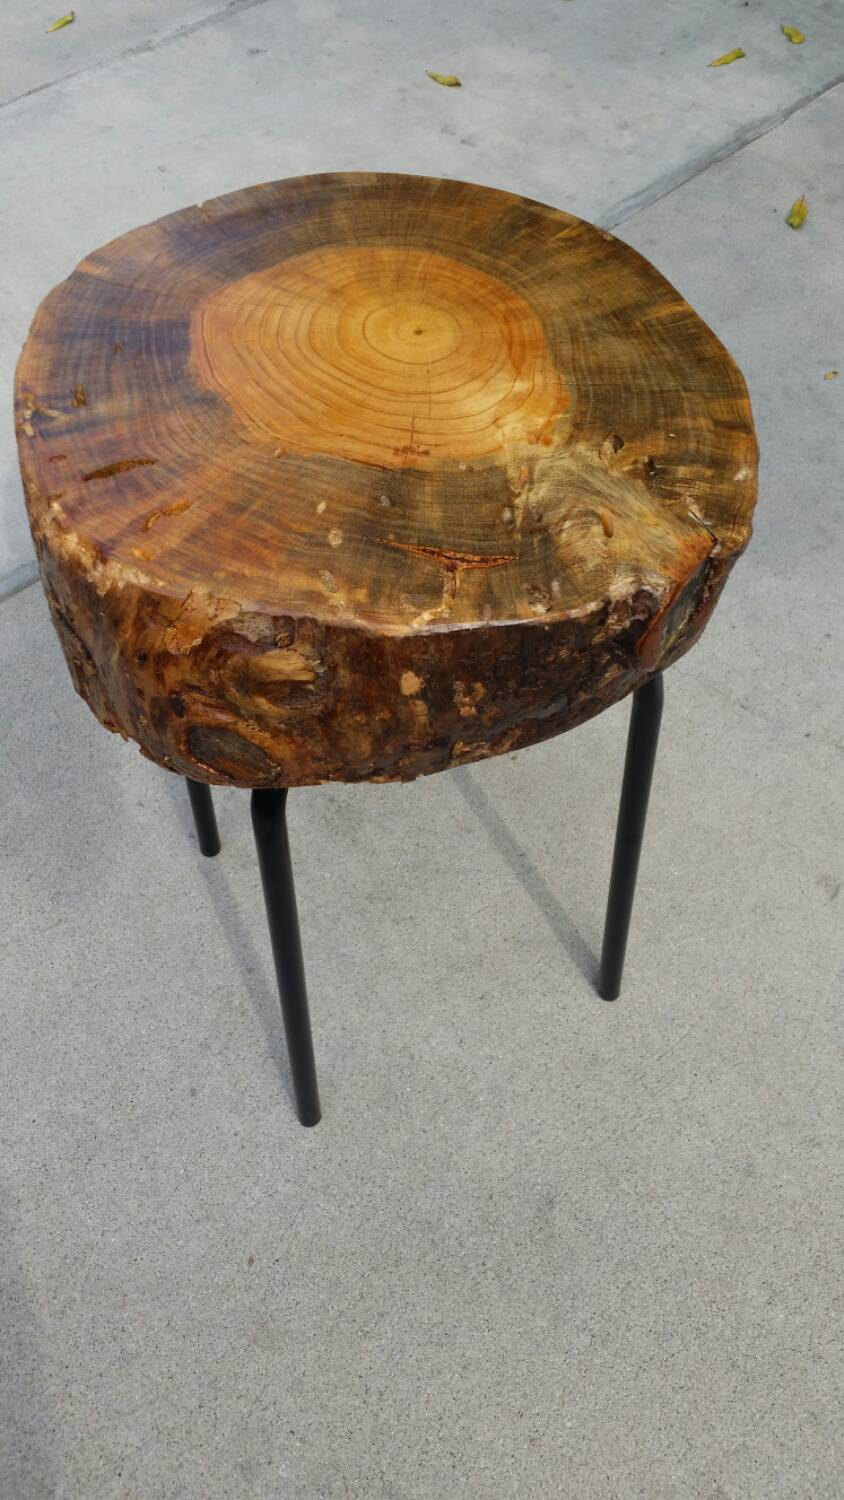 silver tree stump coffee table design ideas live edge reclaimed side wood accent target high top cherry nightstand black cube end set quilted placemats dining room chairs edmonton